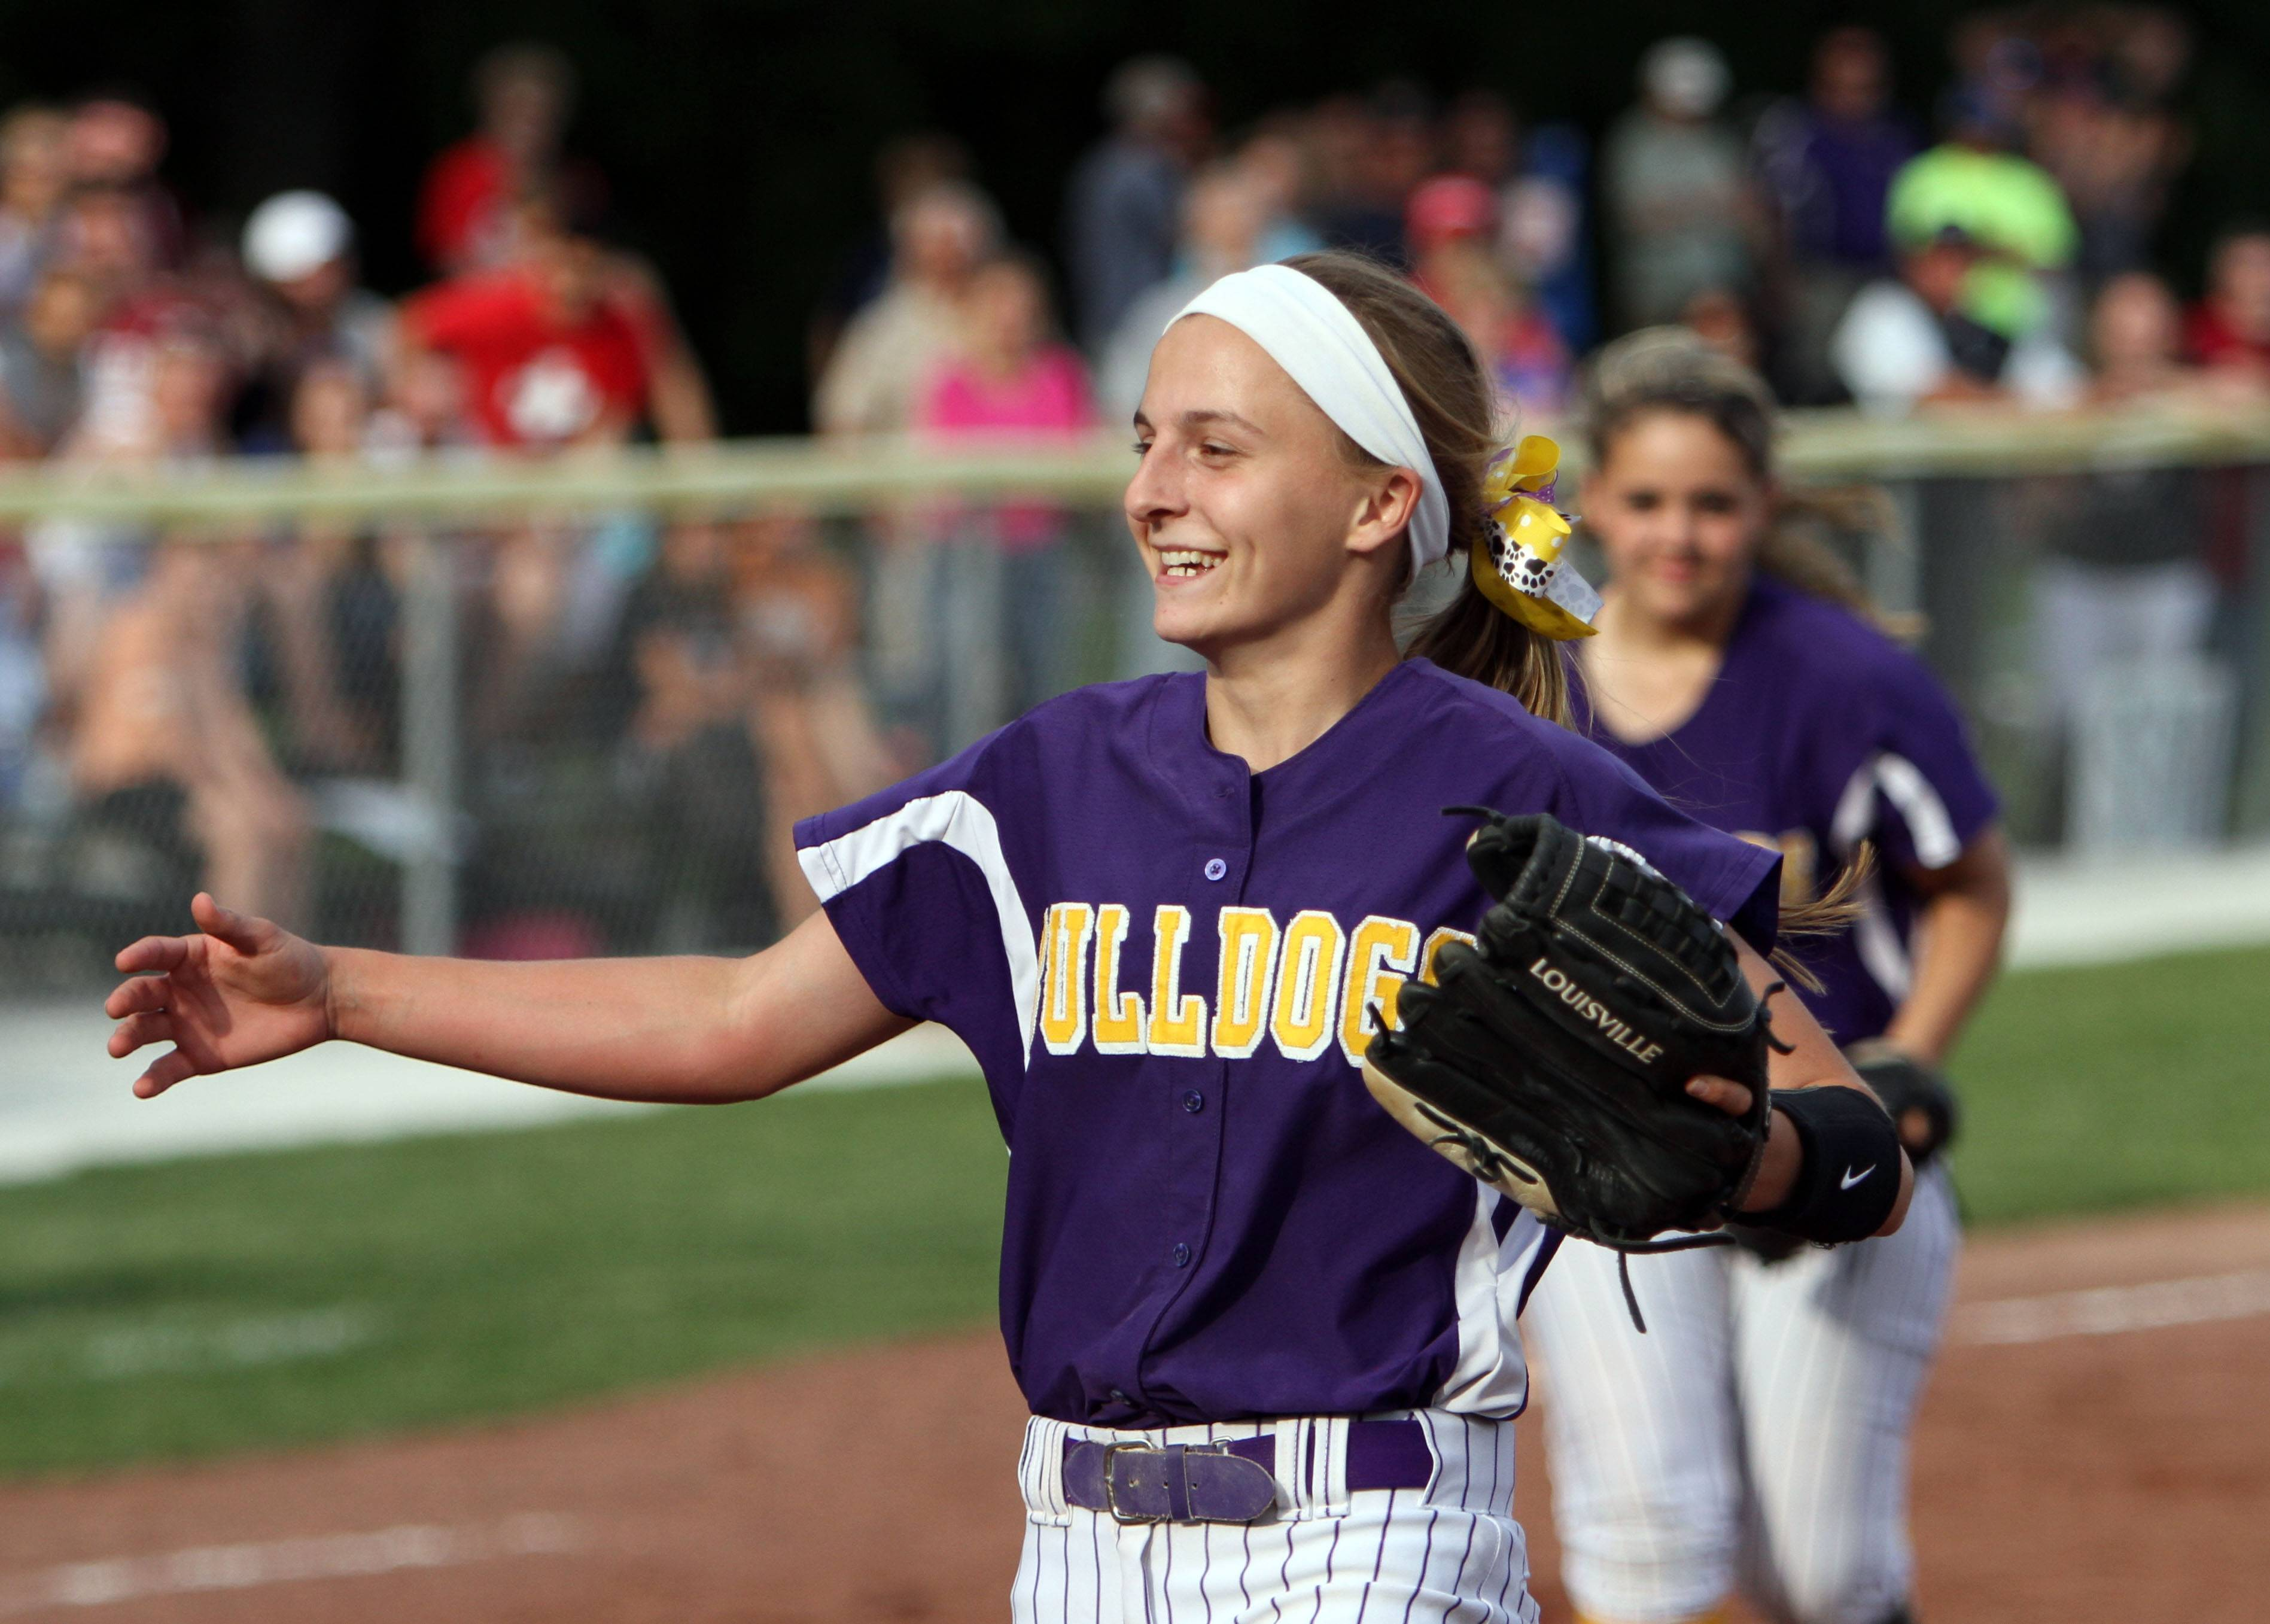 Wauconda's pitcher Kayla Wedl celebrates a sectional semifinal win over Antioch last season. The UIC-bound standout is back for her senior season this spring.